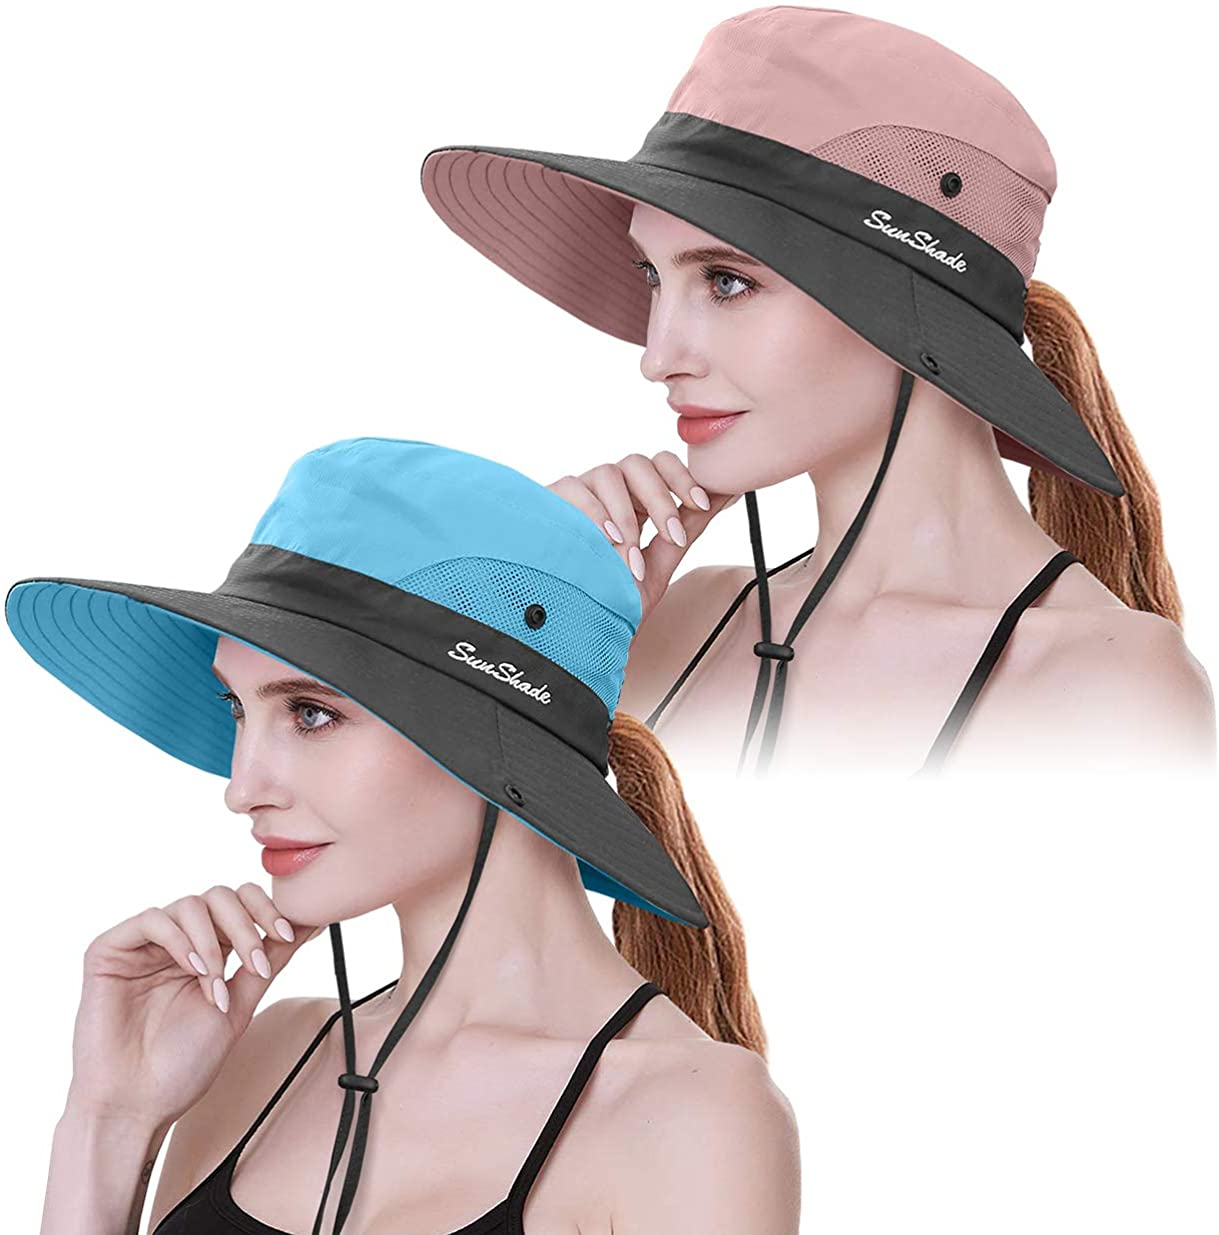 2 Pieces Womens Ponytail UV Protection Sun Hat Packable Wide Brim Boonie Cap for Fishing Hiking